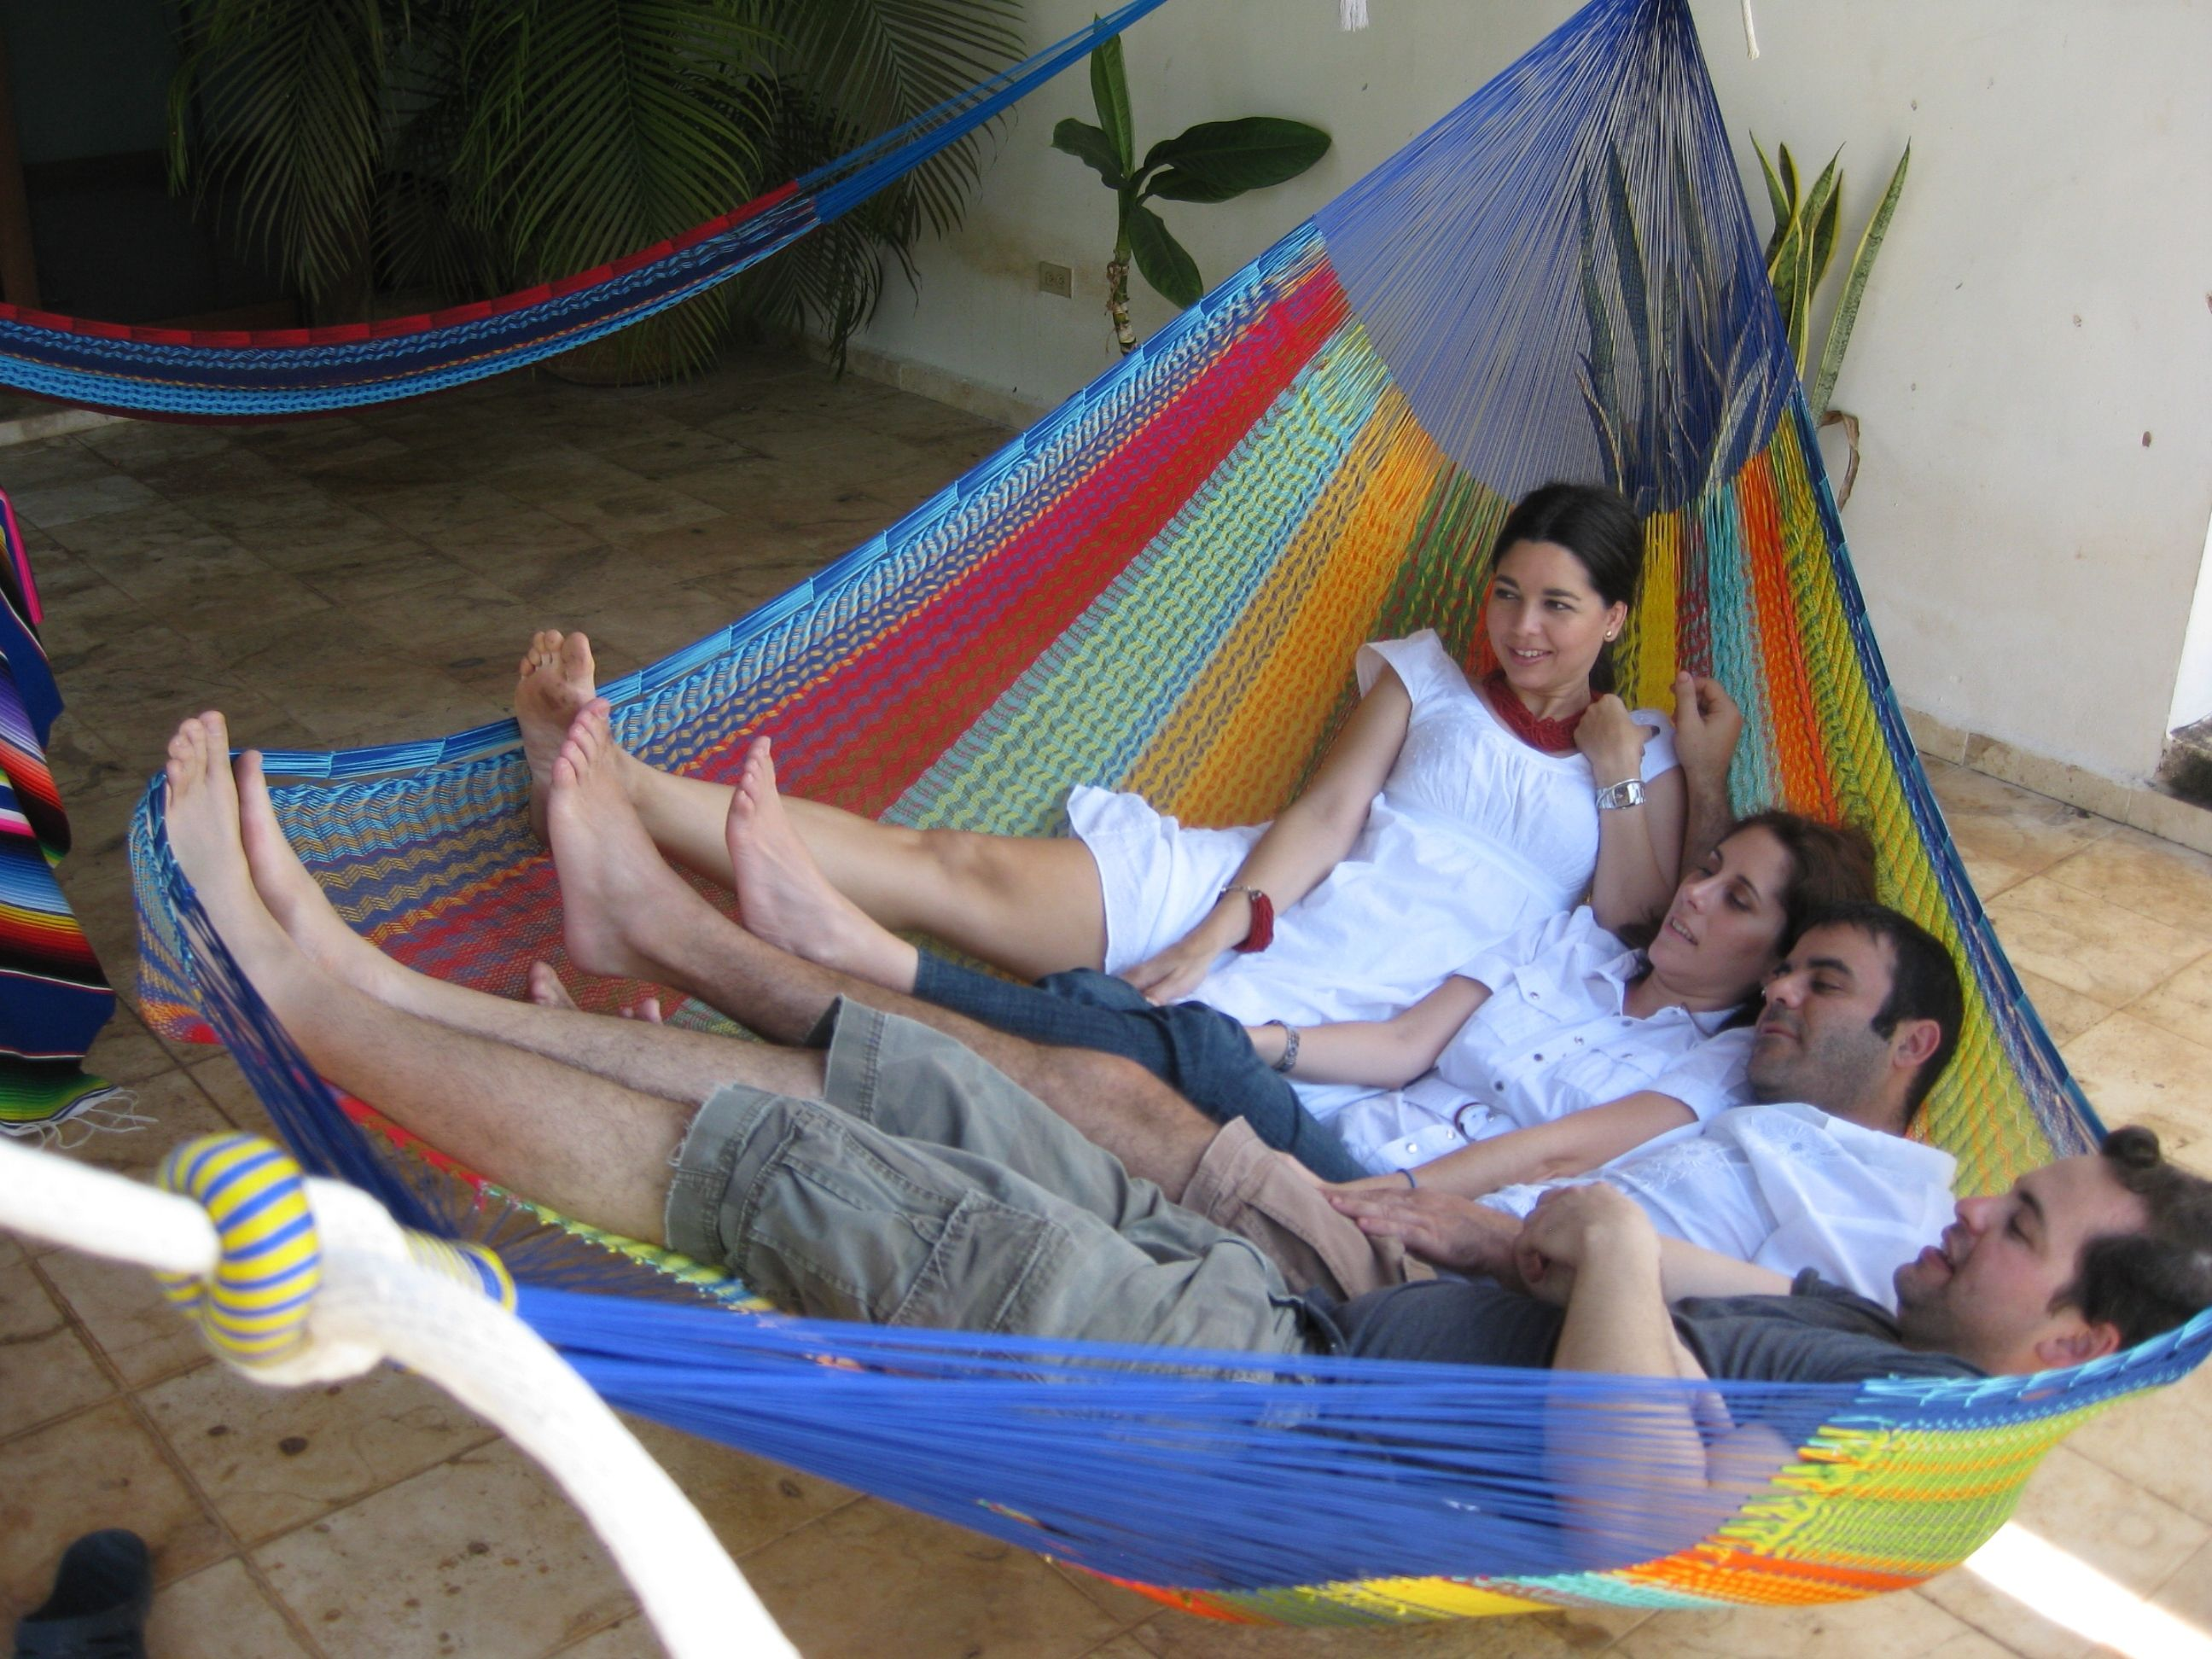 e of the most popular hammocks is the King Size Mexican hammock